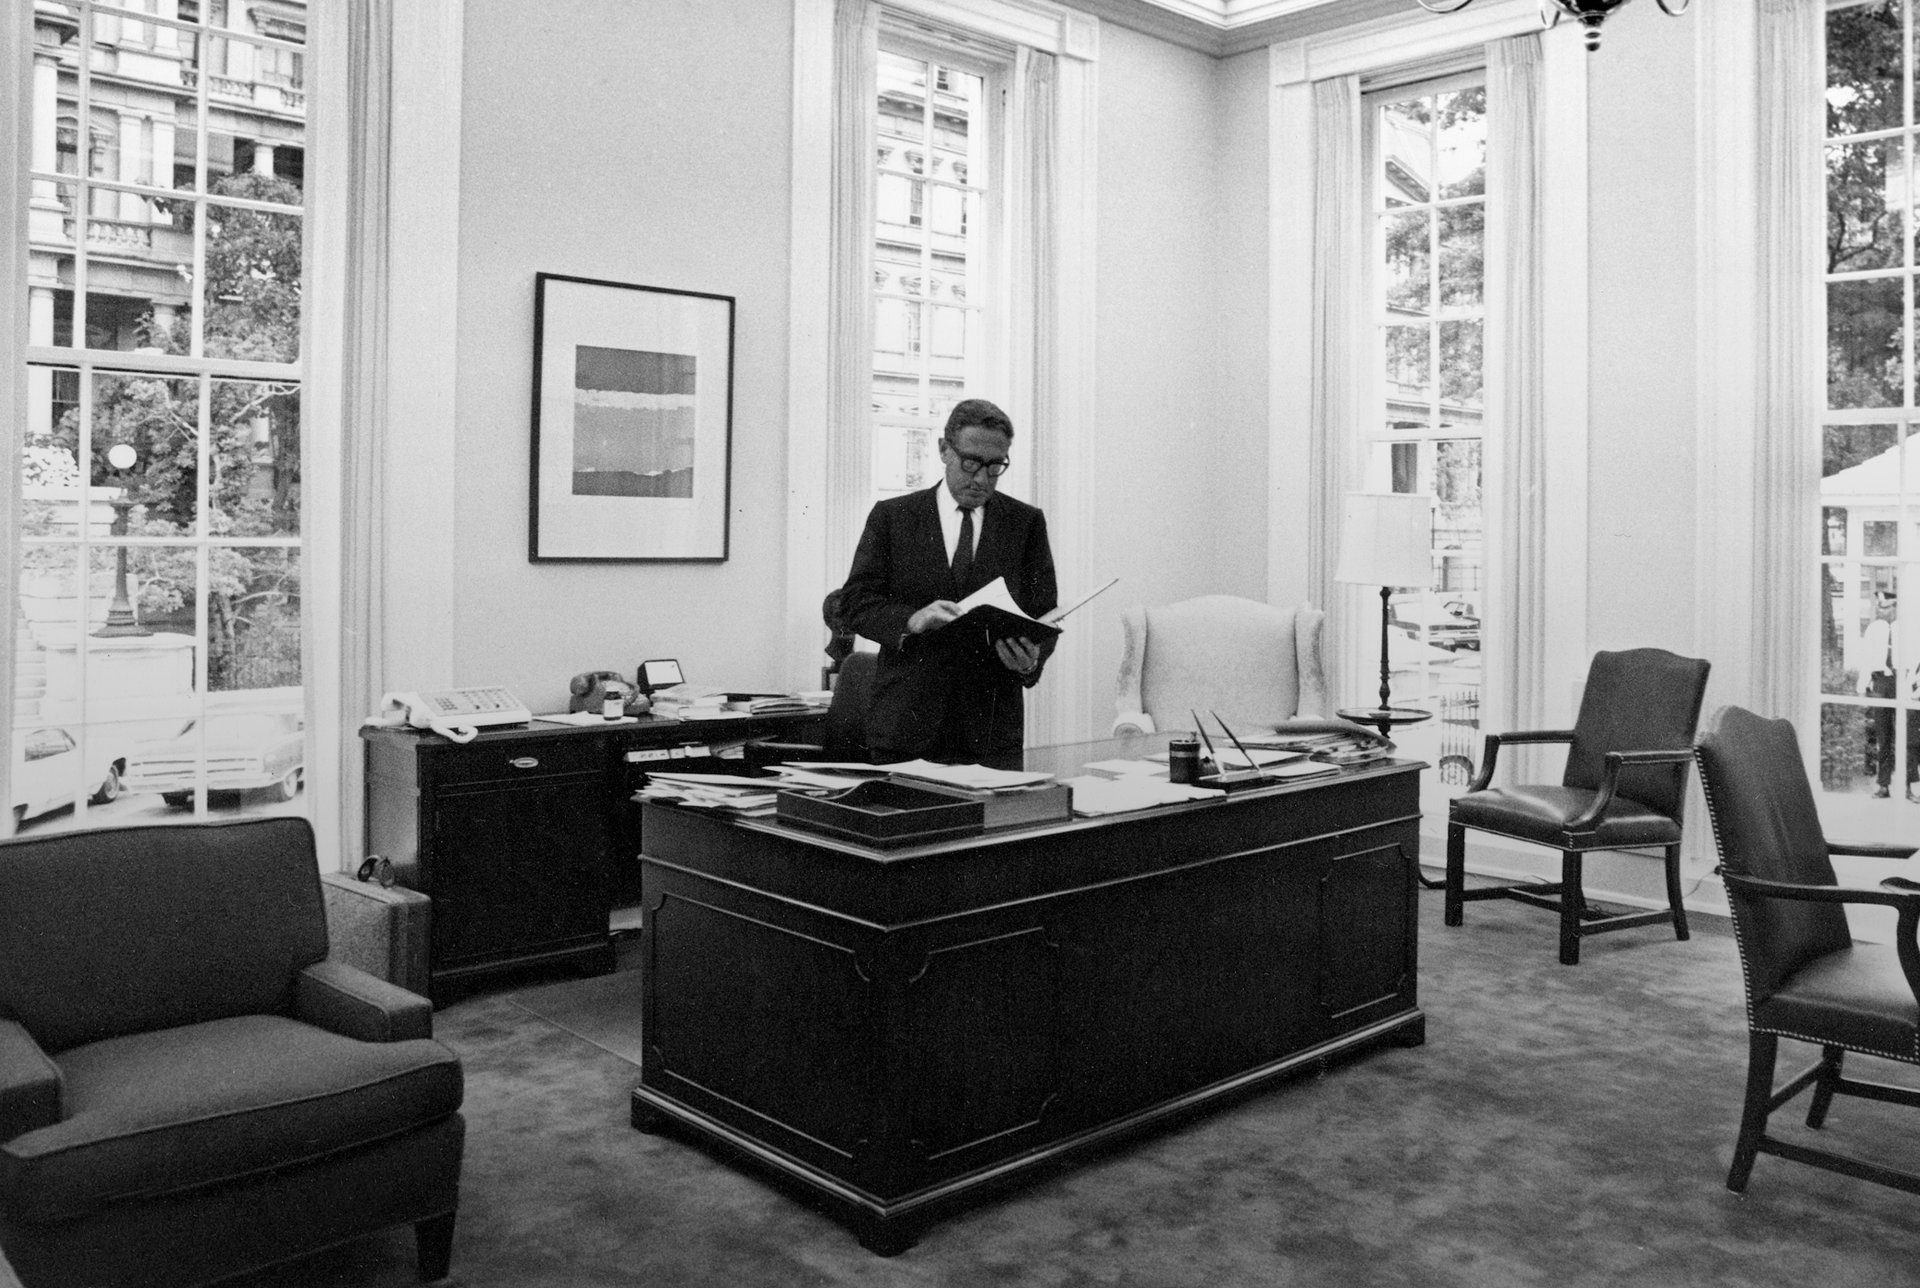 Presidential National Security Adviser Henry Kissinger is shown in his office at the White House in Washington, D.C., Aug. 6, 1970.